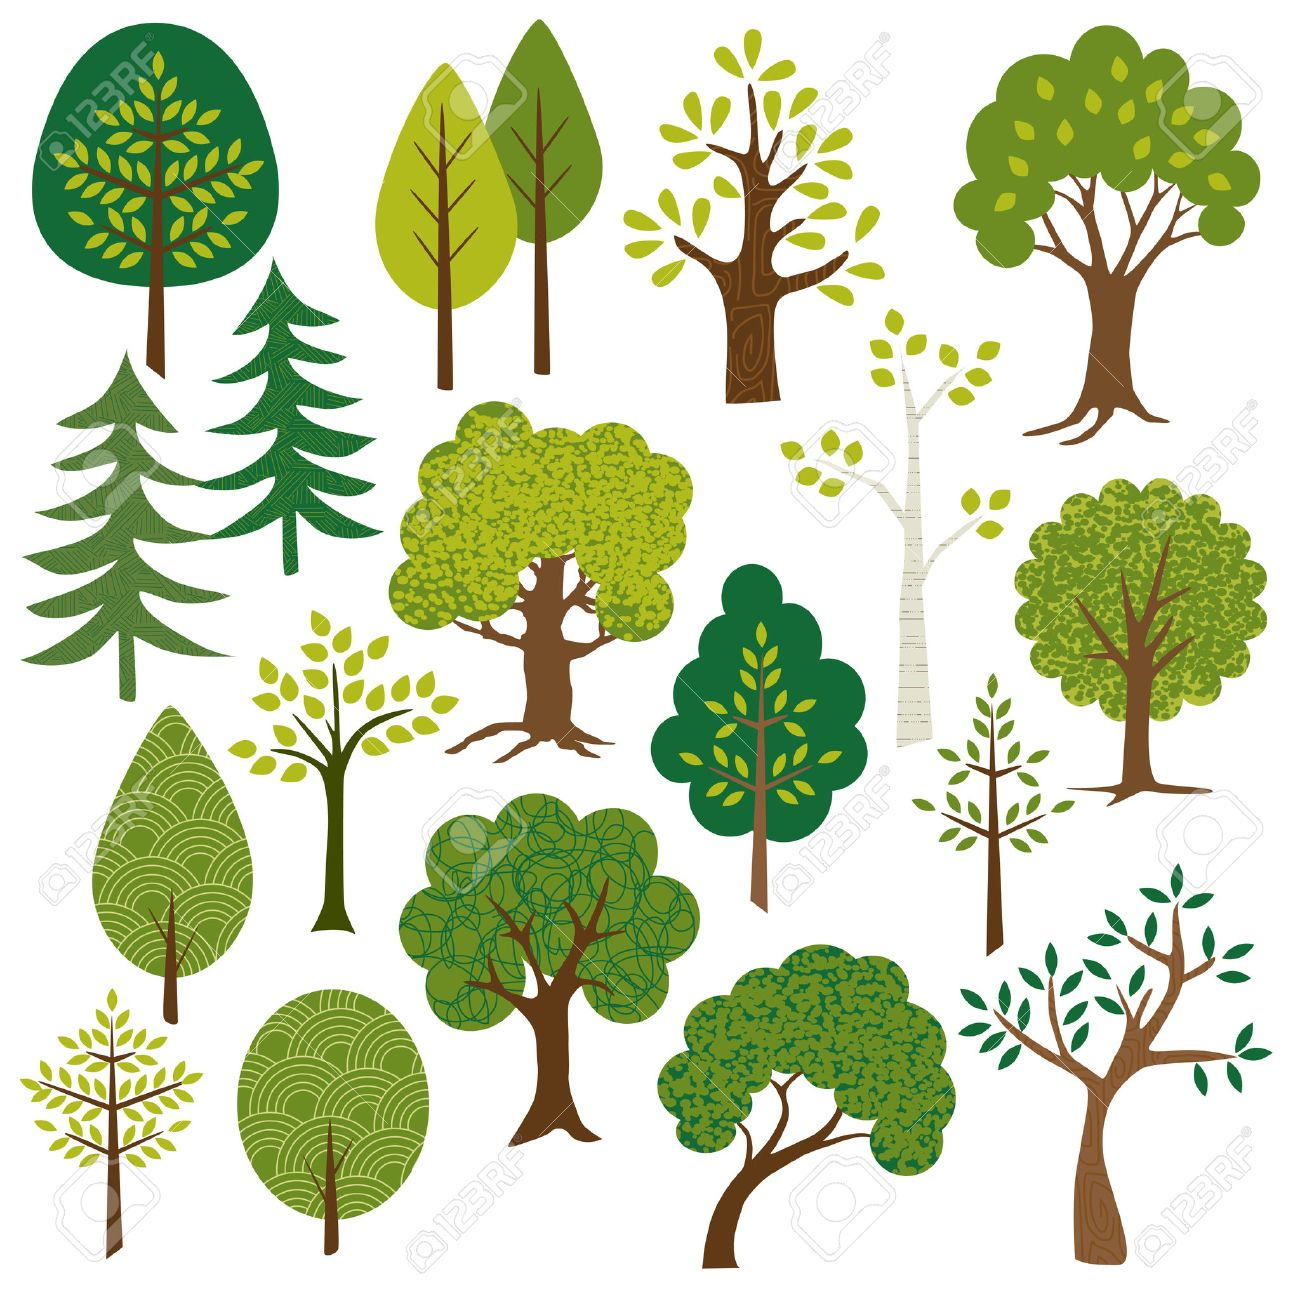 trees clipart royalty free cliparts vectors and stock illustration rh 123rf com trees clipart for microsoft word trees clipart without leaves